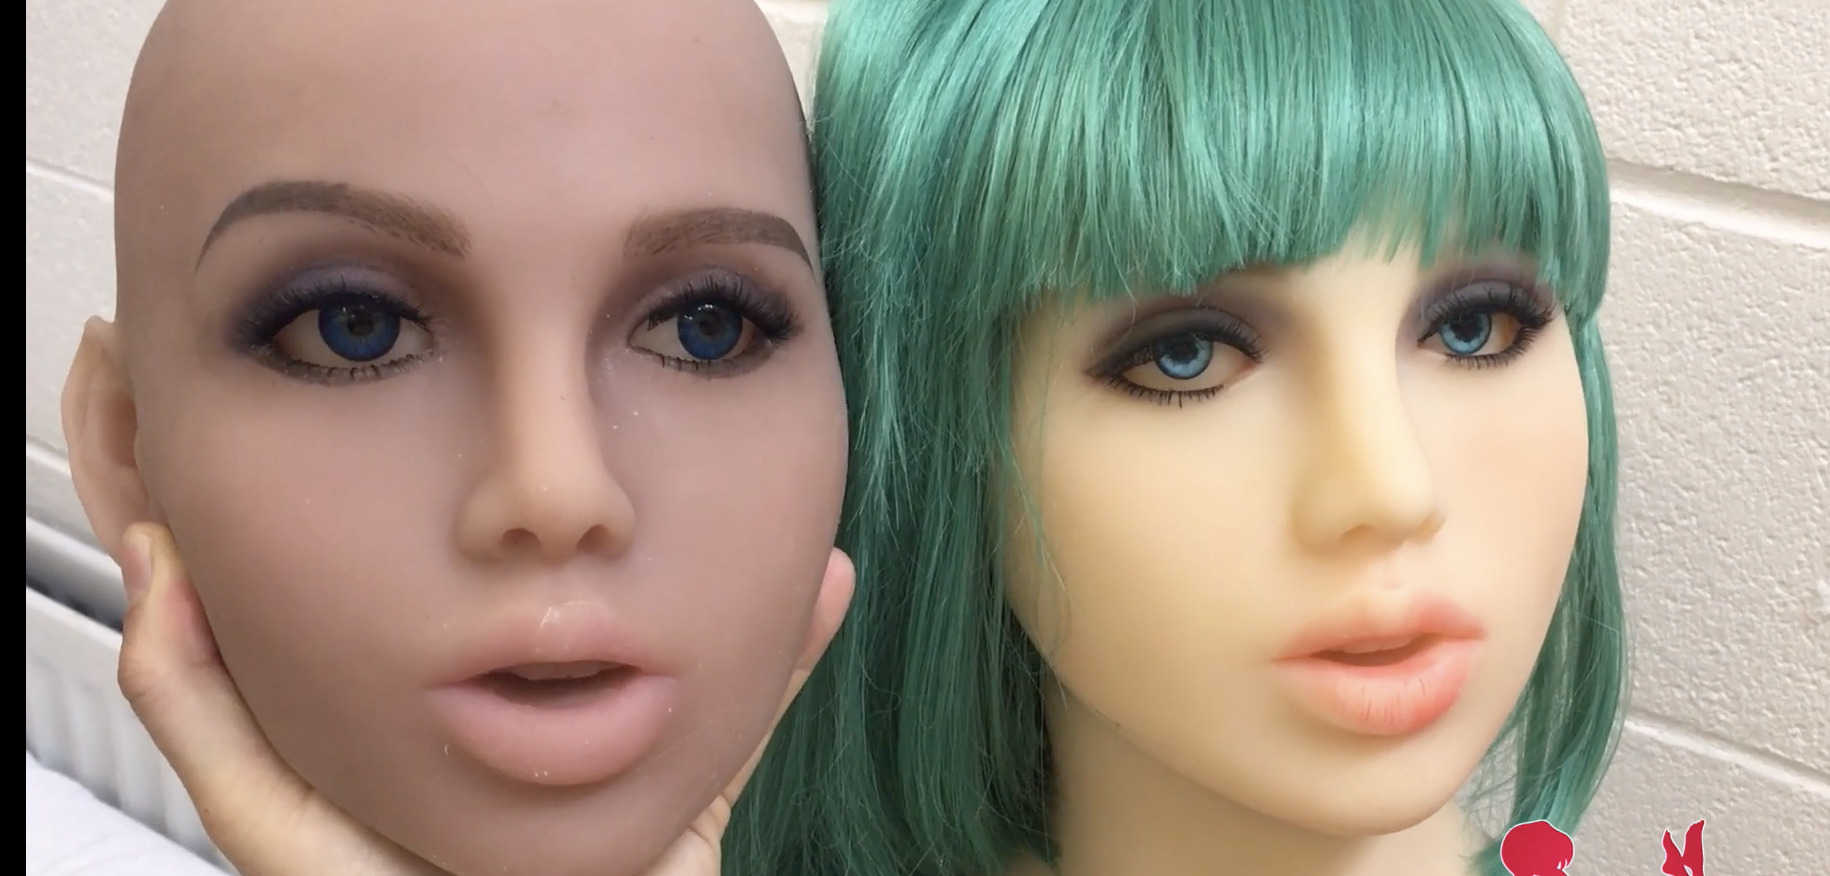 Sex Robots Are Here, But Laws Aren't Keeping Up With The Ethical And Privacy Issues